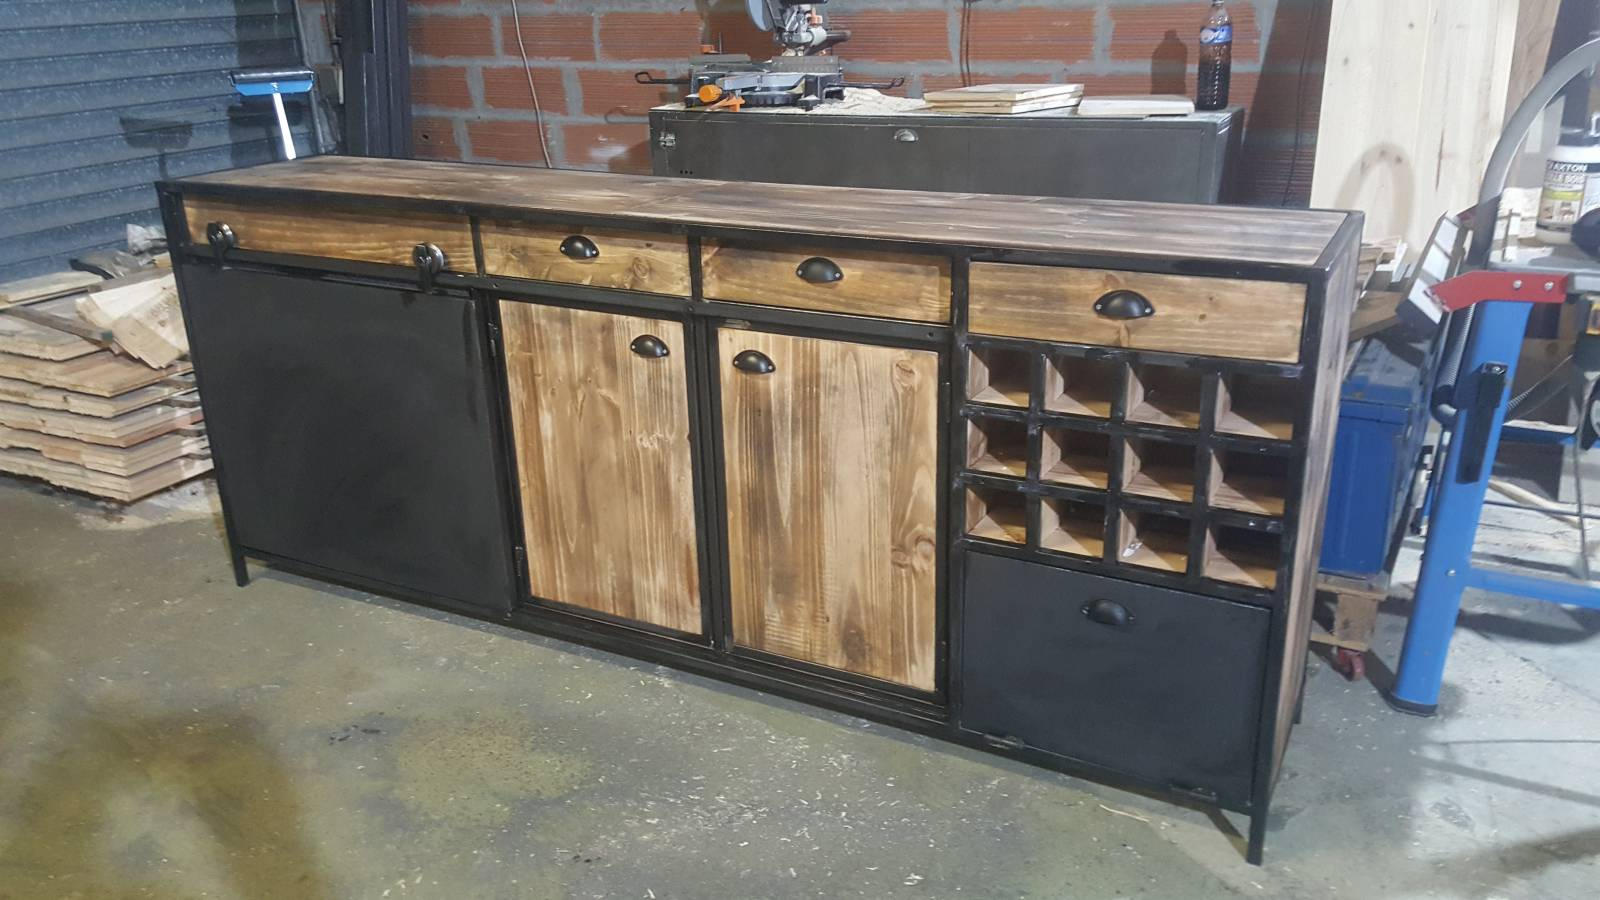 fabrication de buffet ou enfilade style industriel sur mesure fabrication de mobilier bois et. Black Bedroom Furniture Sets. Home Design Ideas